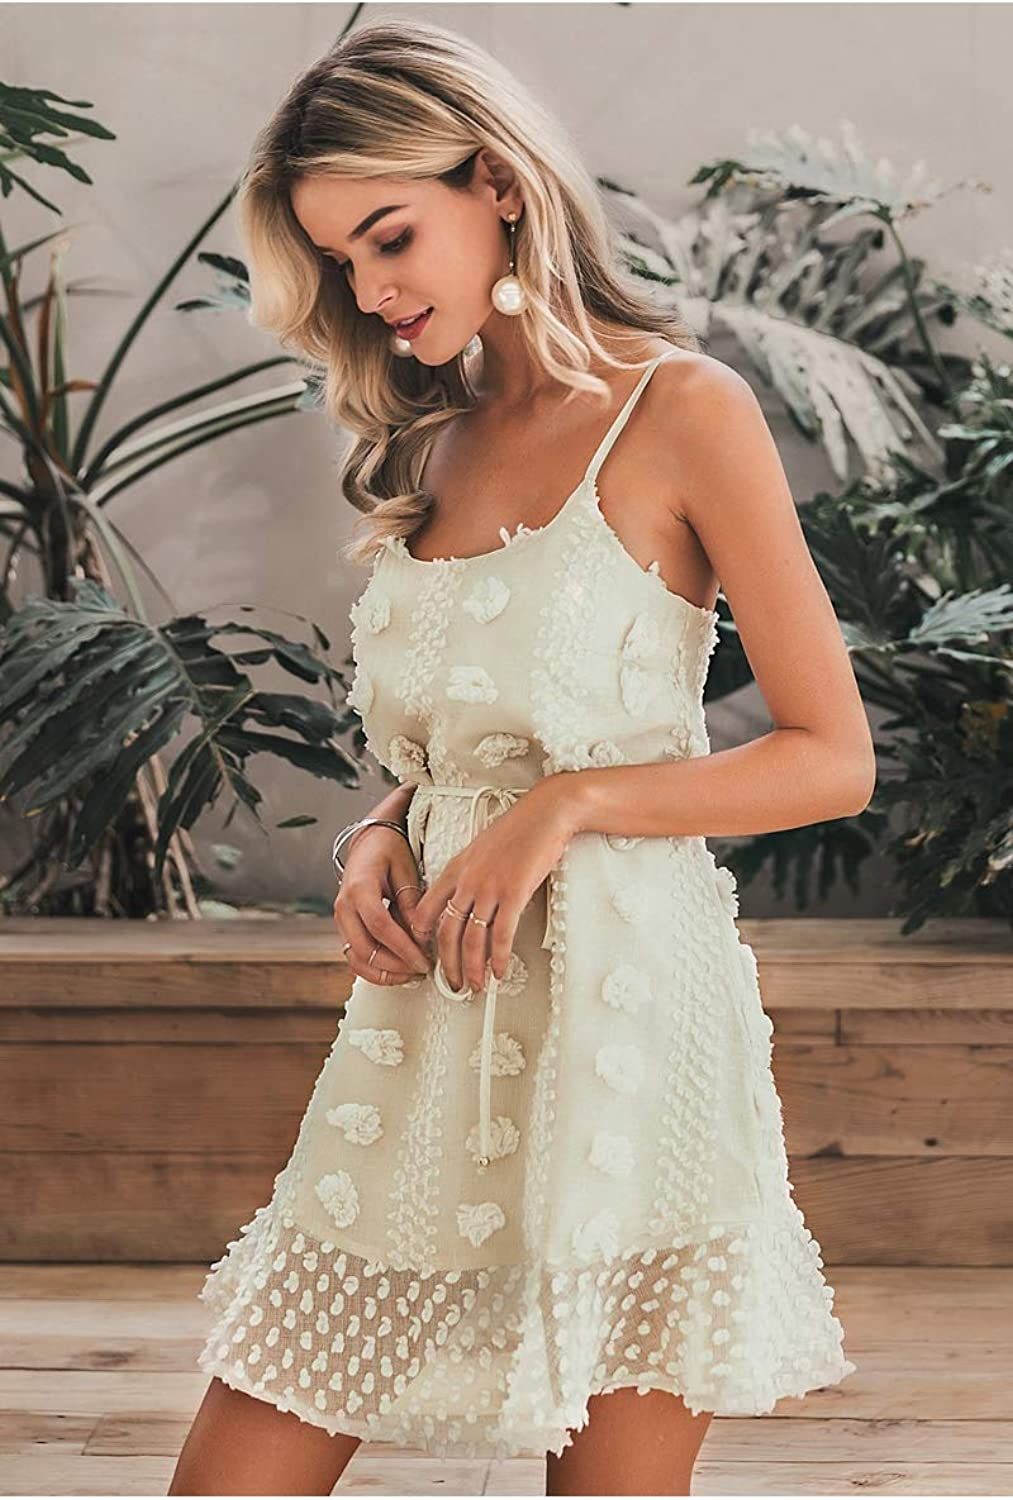 Elegant Flower Embroidery Short Dress Women Sexy Spaghetti Strap Summer Sundress Female lace up Mini Beach Dress 2019